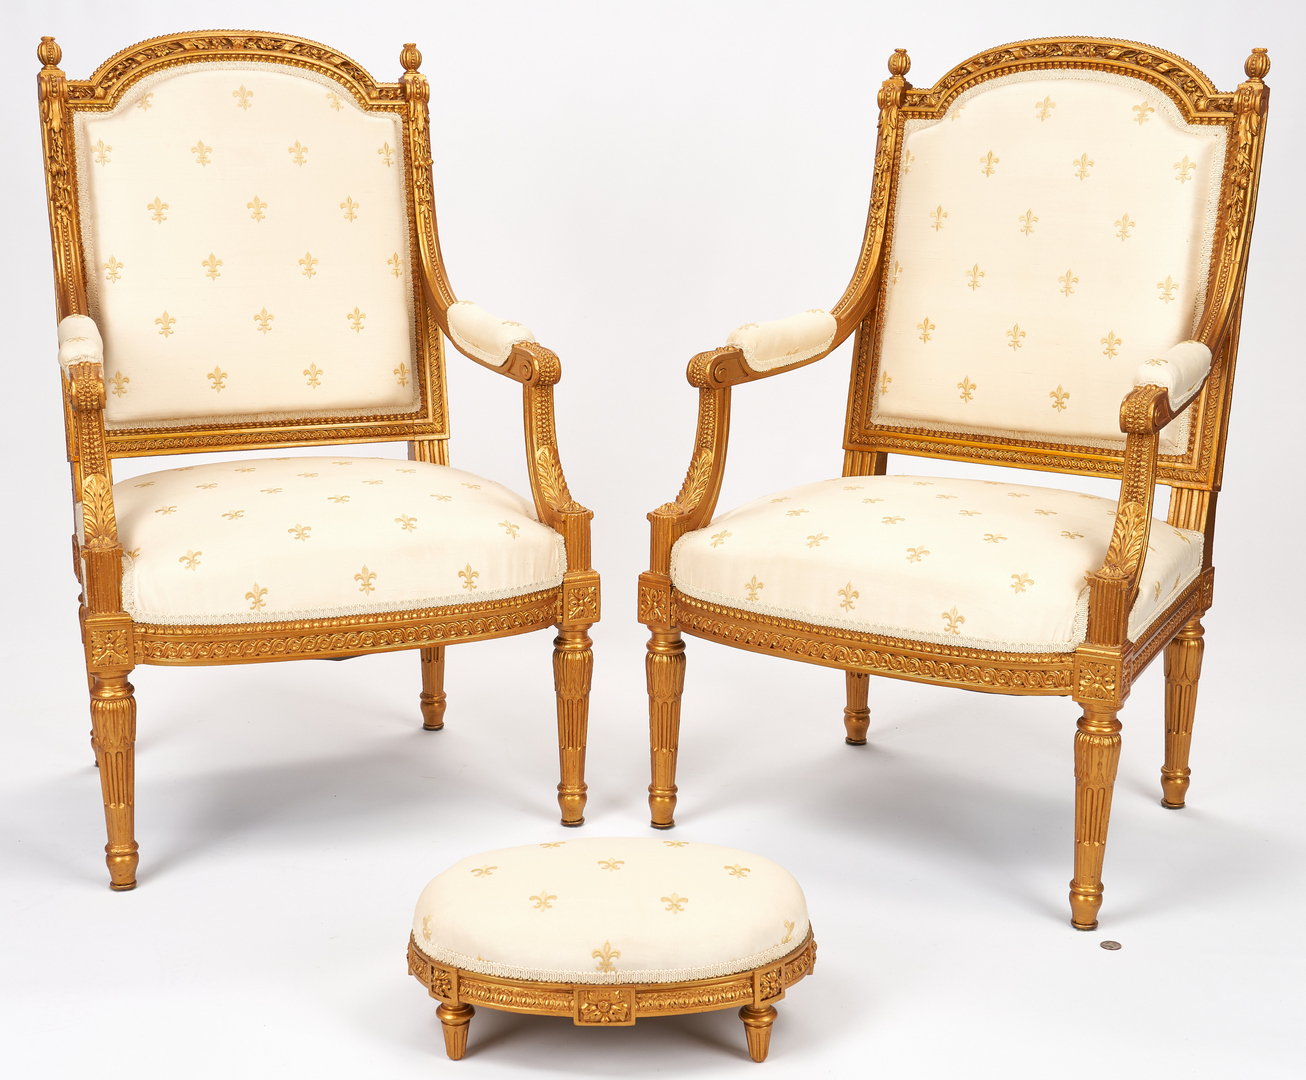 Lot 337: Pair of French Louis XVI Style Fauteuils & Footstool